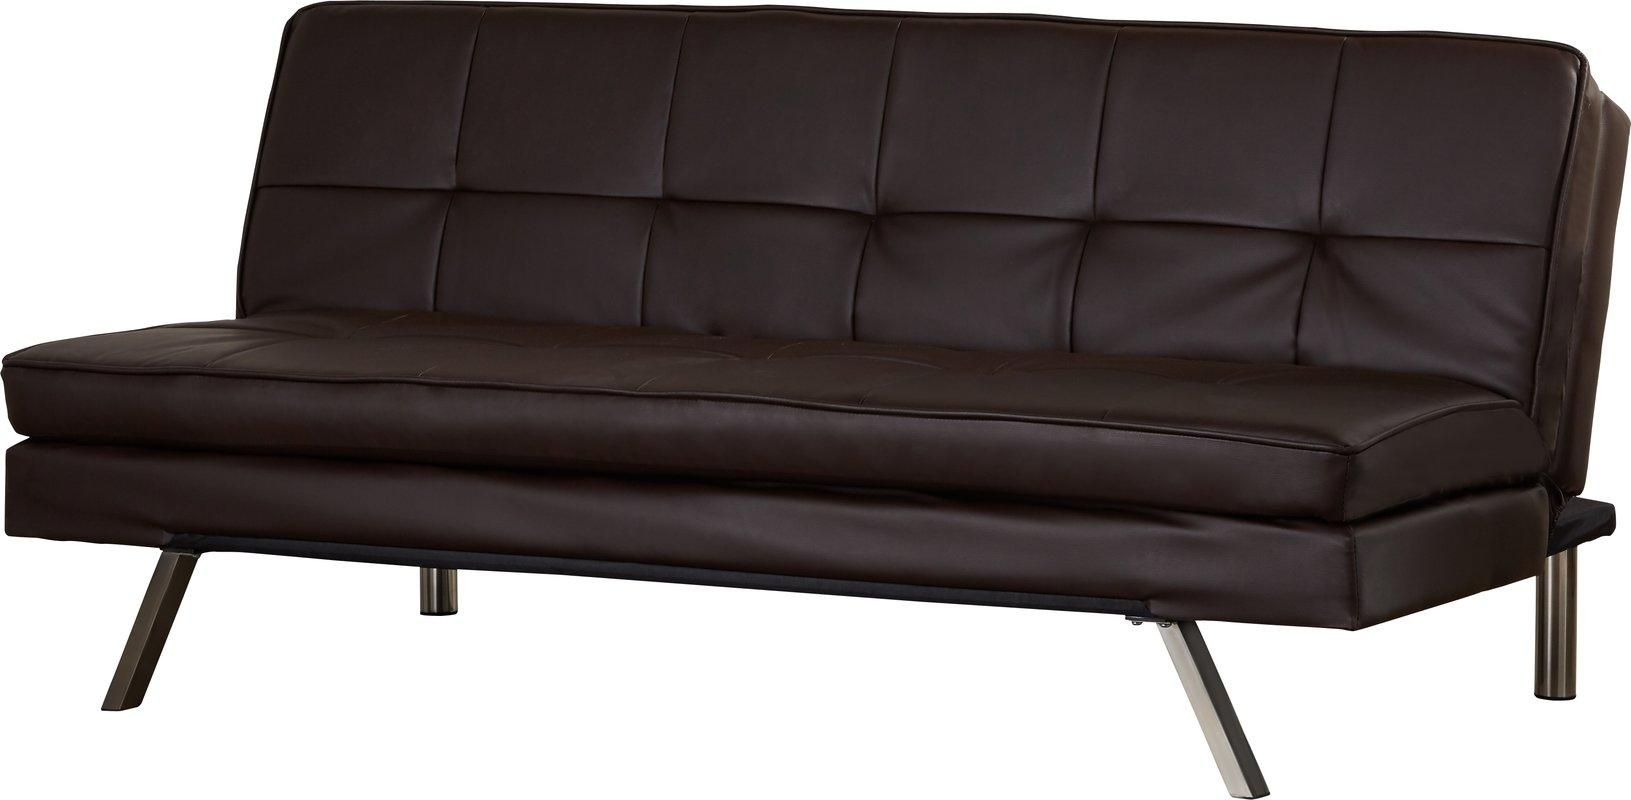 victoria clic clac sofa bed review simmons charcoal big lots 20 inspirations florence beds ideas